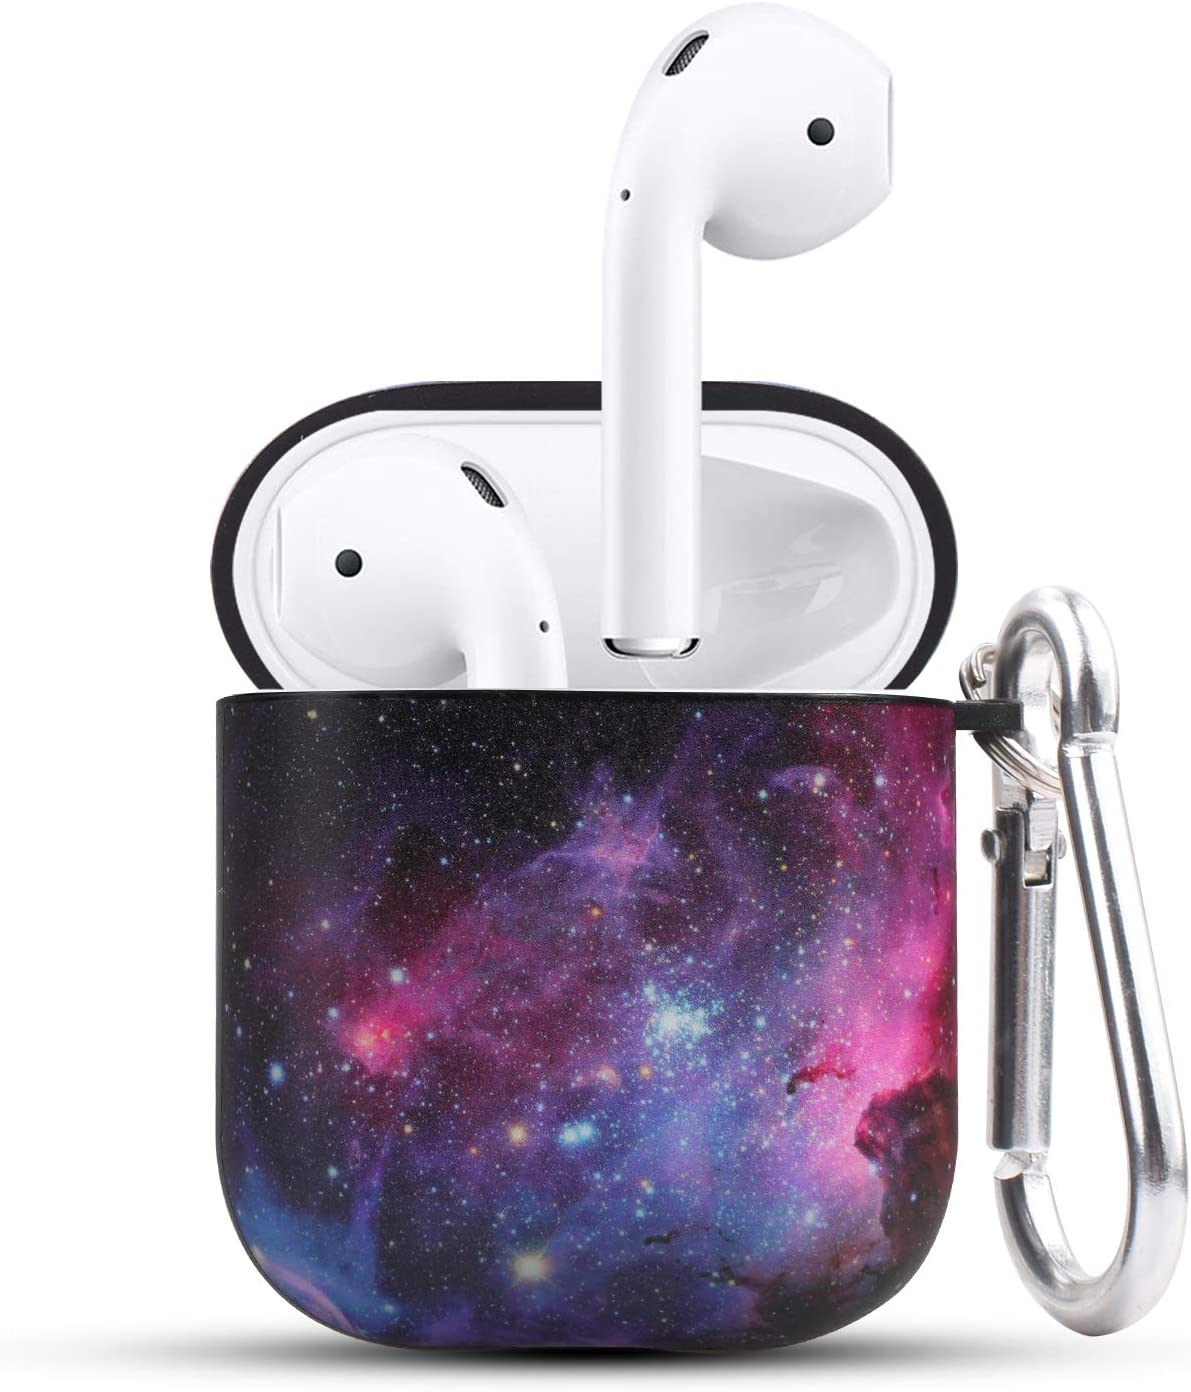 HIDAHE Airpod Cases, Airpod Case Cute, Airpod Case Luxury, Cute Protective Hard Designer Airpods Case for Girls Men Women Compatible with Apple AirPods Charging Case 2&1, Nebula